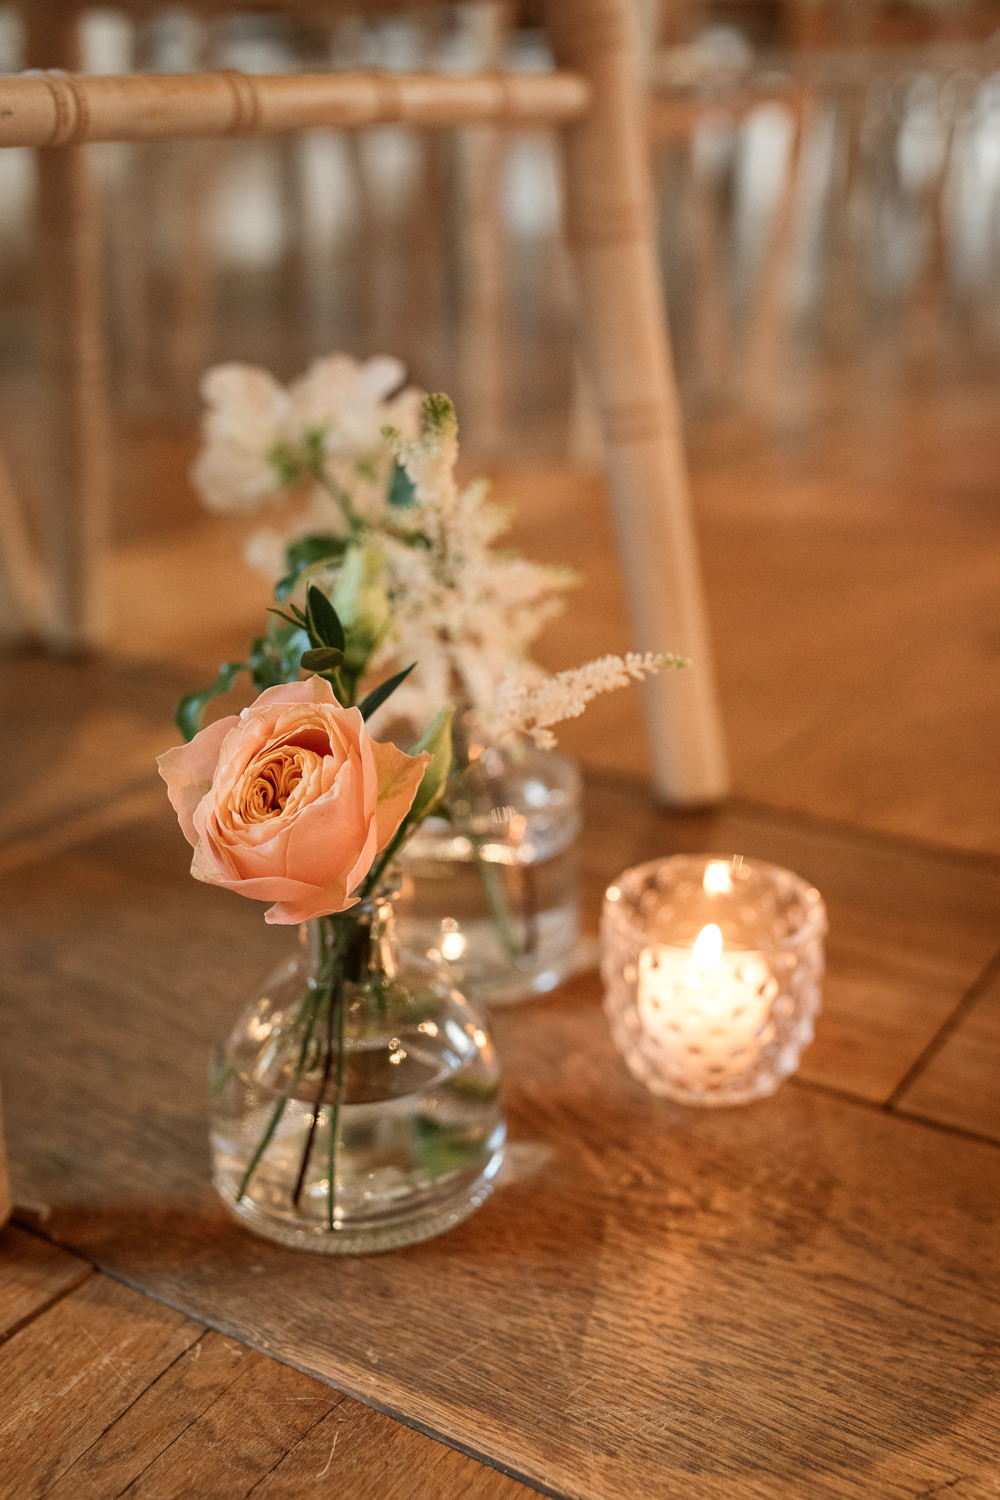 Bottle Flowers Candles Pew End Aisle Celestial Wedding Inspiration Becky Harley Photography